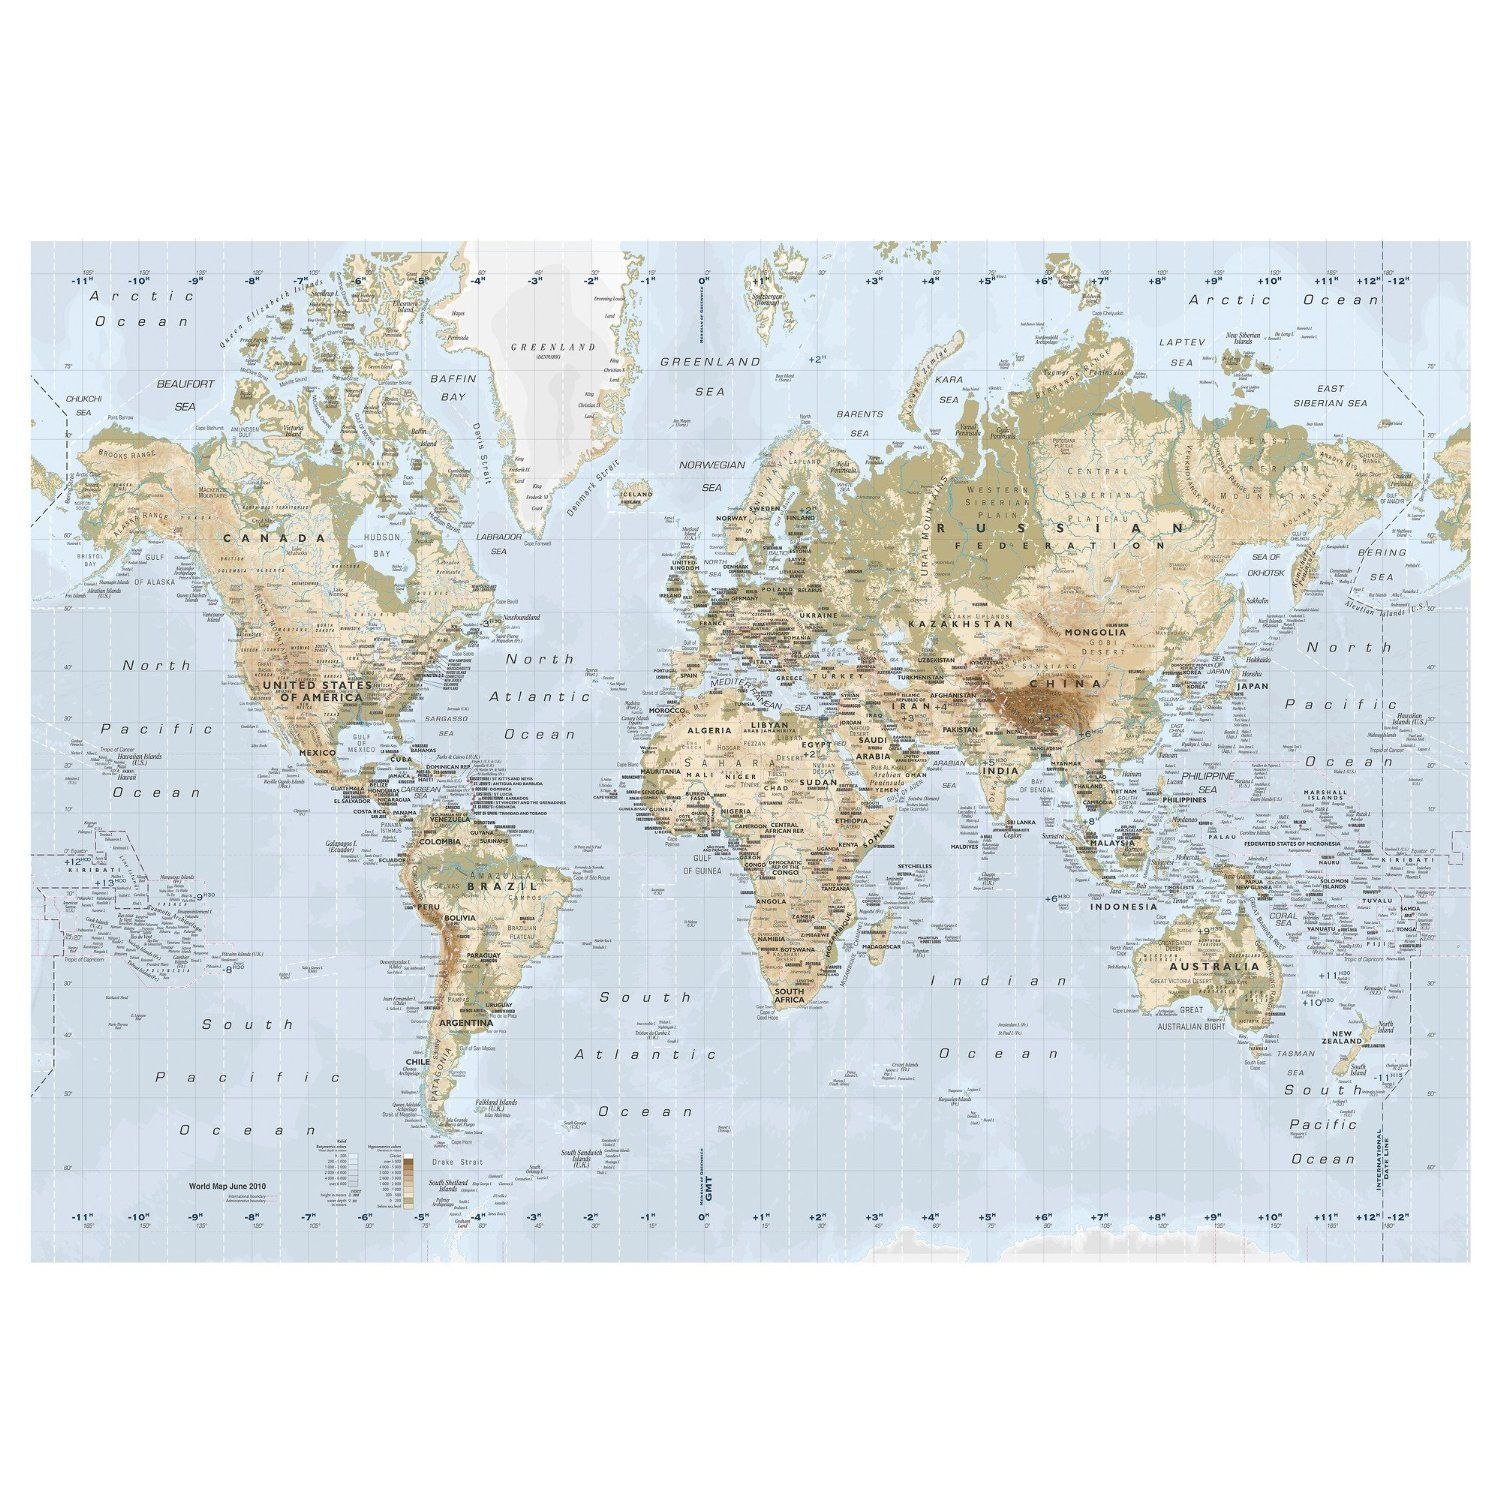 New York City Map Poster Image 0 New York City Map Poster Ikea ...